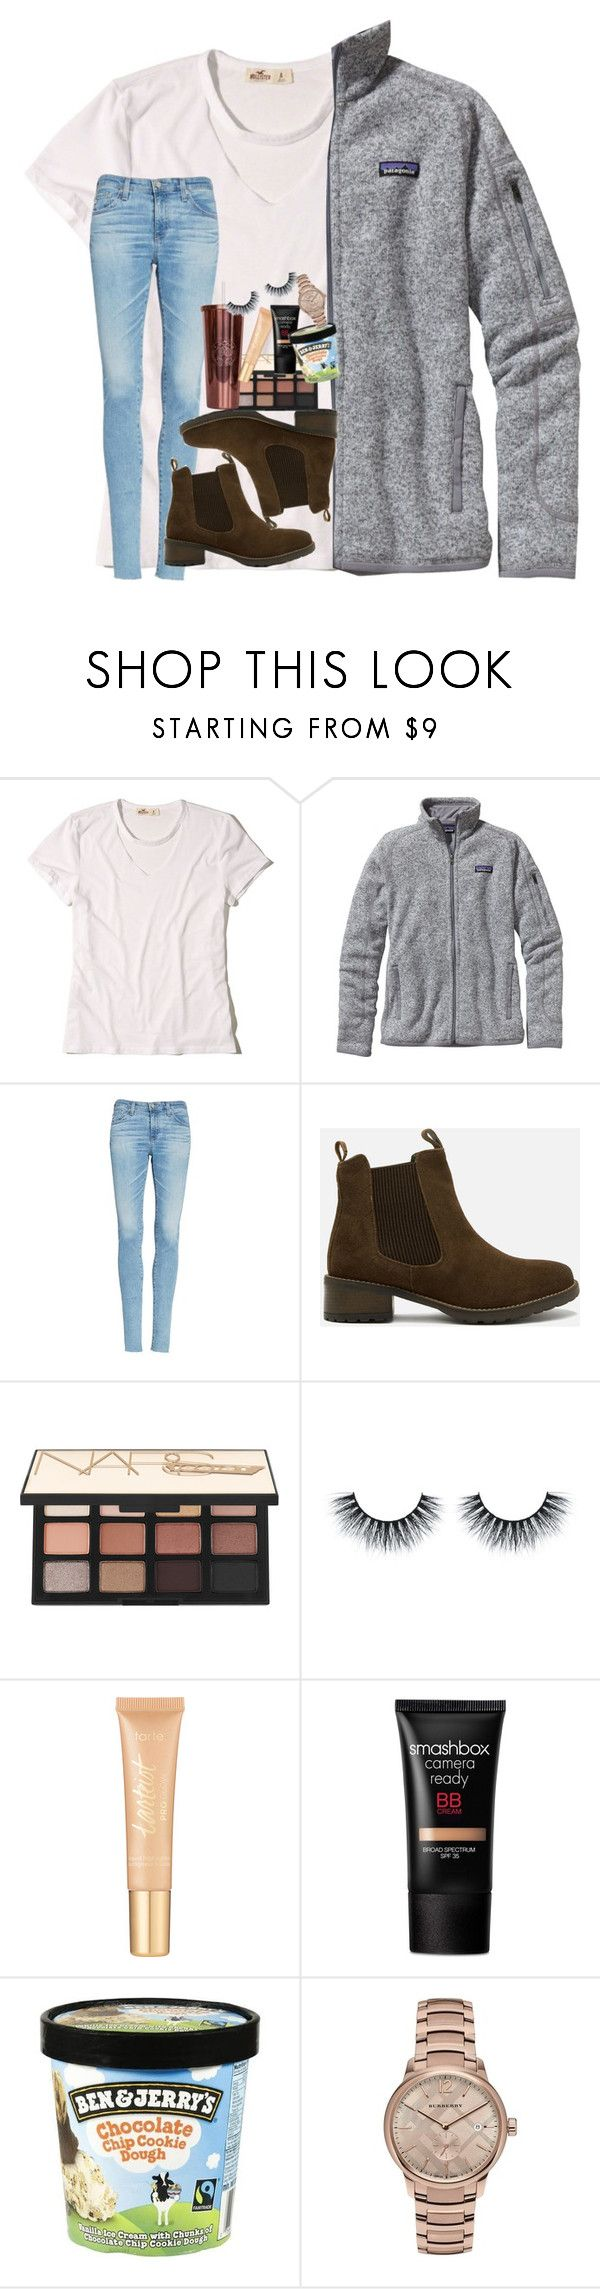 """got this patagonia:)"" by rxindrops-on-roses ❤ liked on Polyvore featuring Hollister Co., Patagonia, AG Adriano Goldschmied, Barbour, NARS Cosmetics, tarte, Smashbox and Burberry"